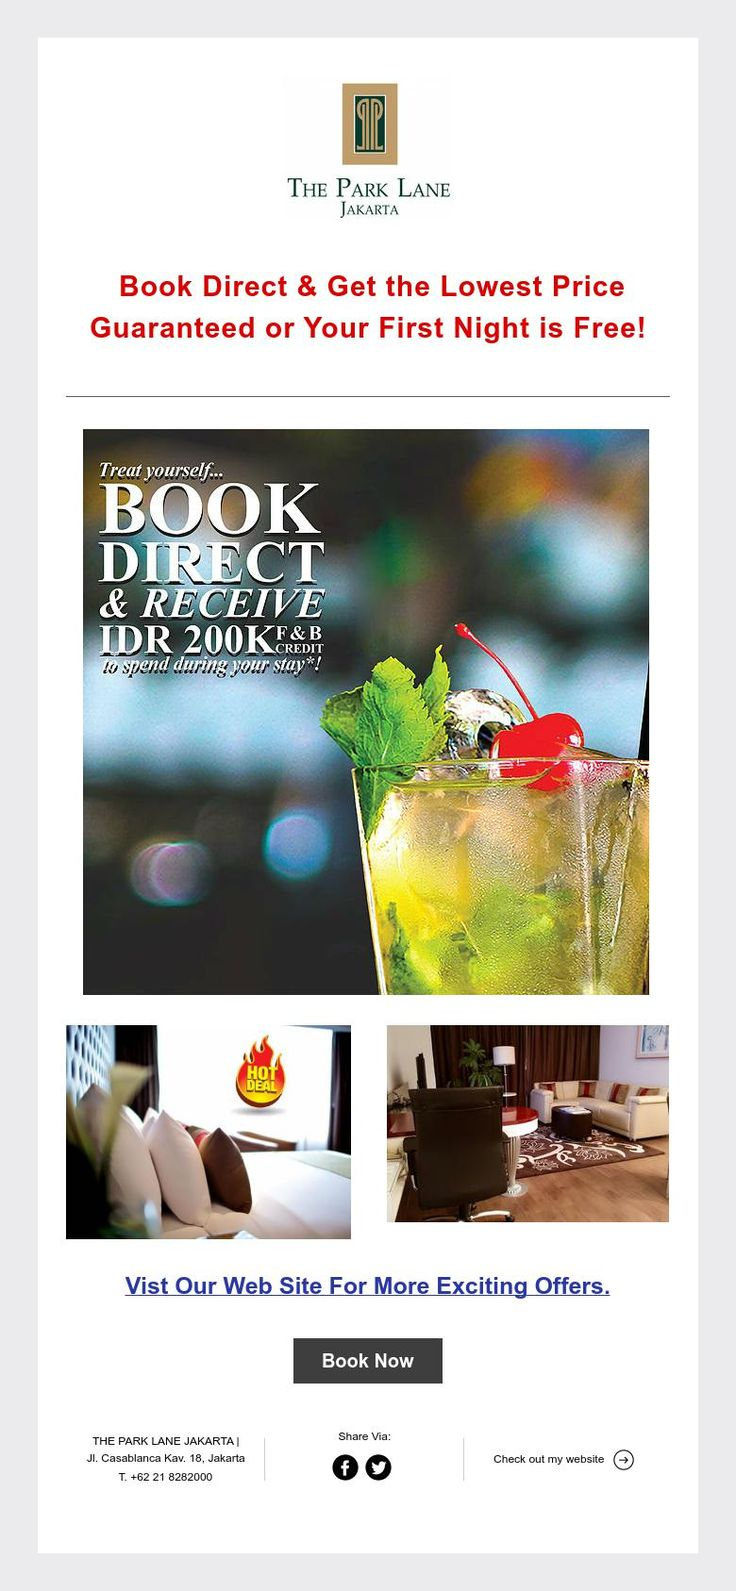 Book Direct & Get The Lowest Price Guaranteed or Your First Night is Free!